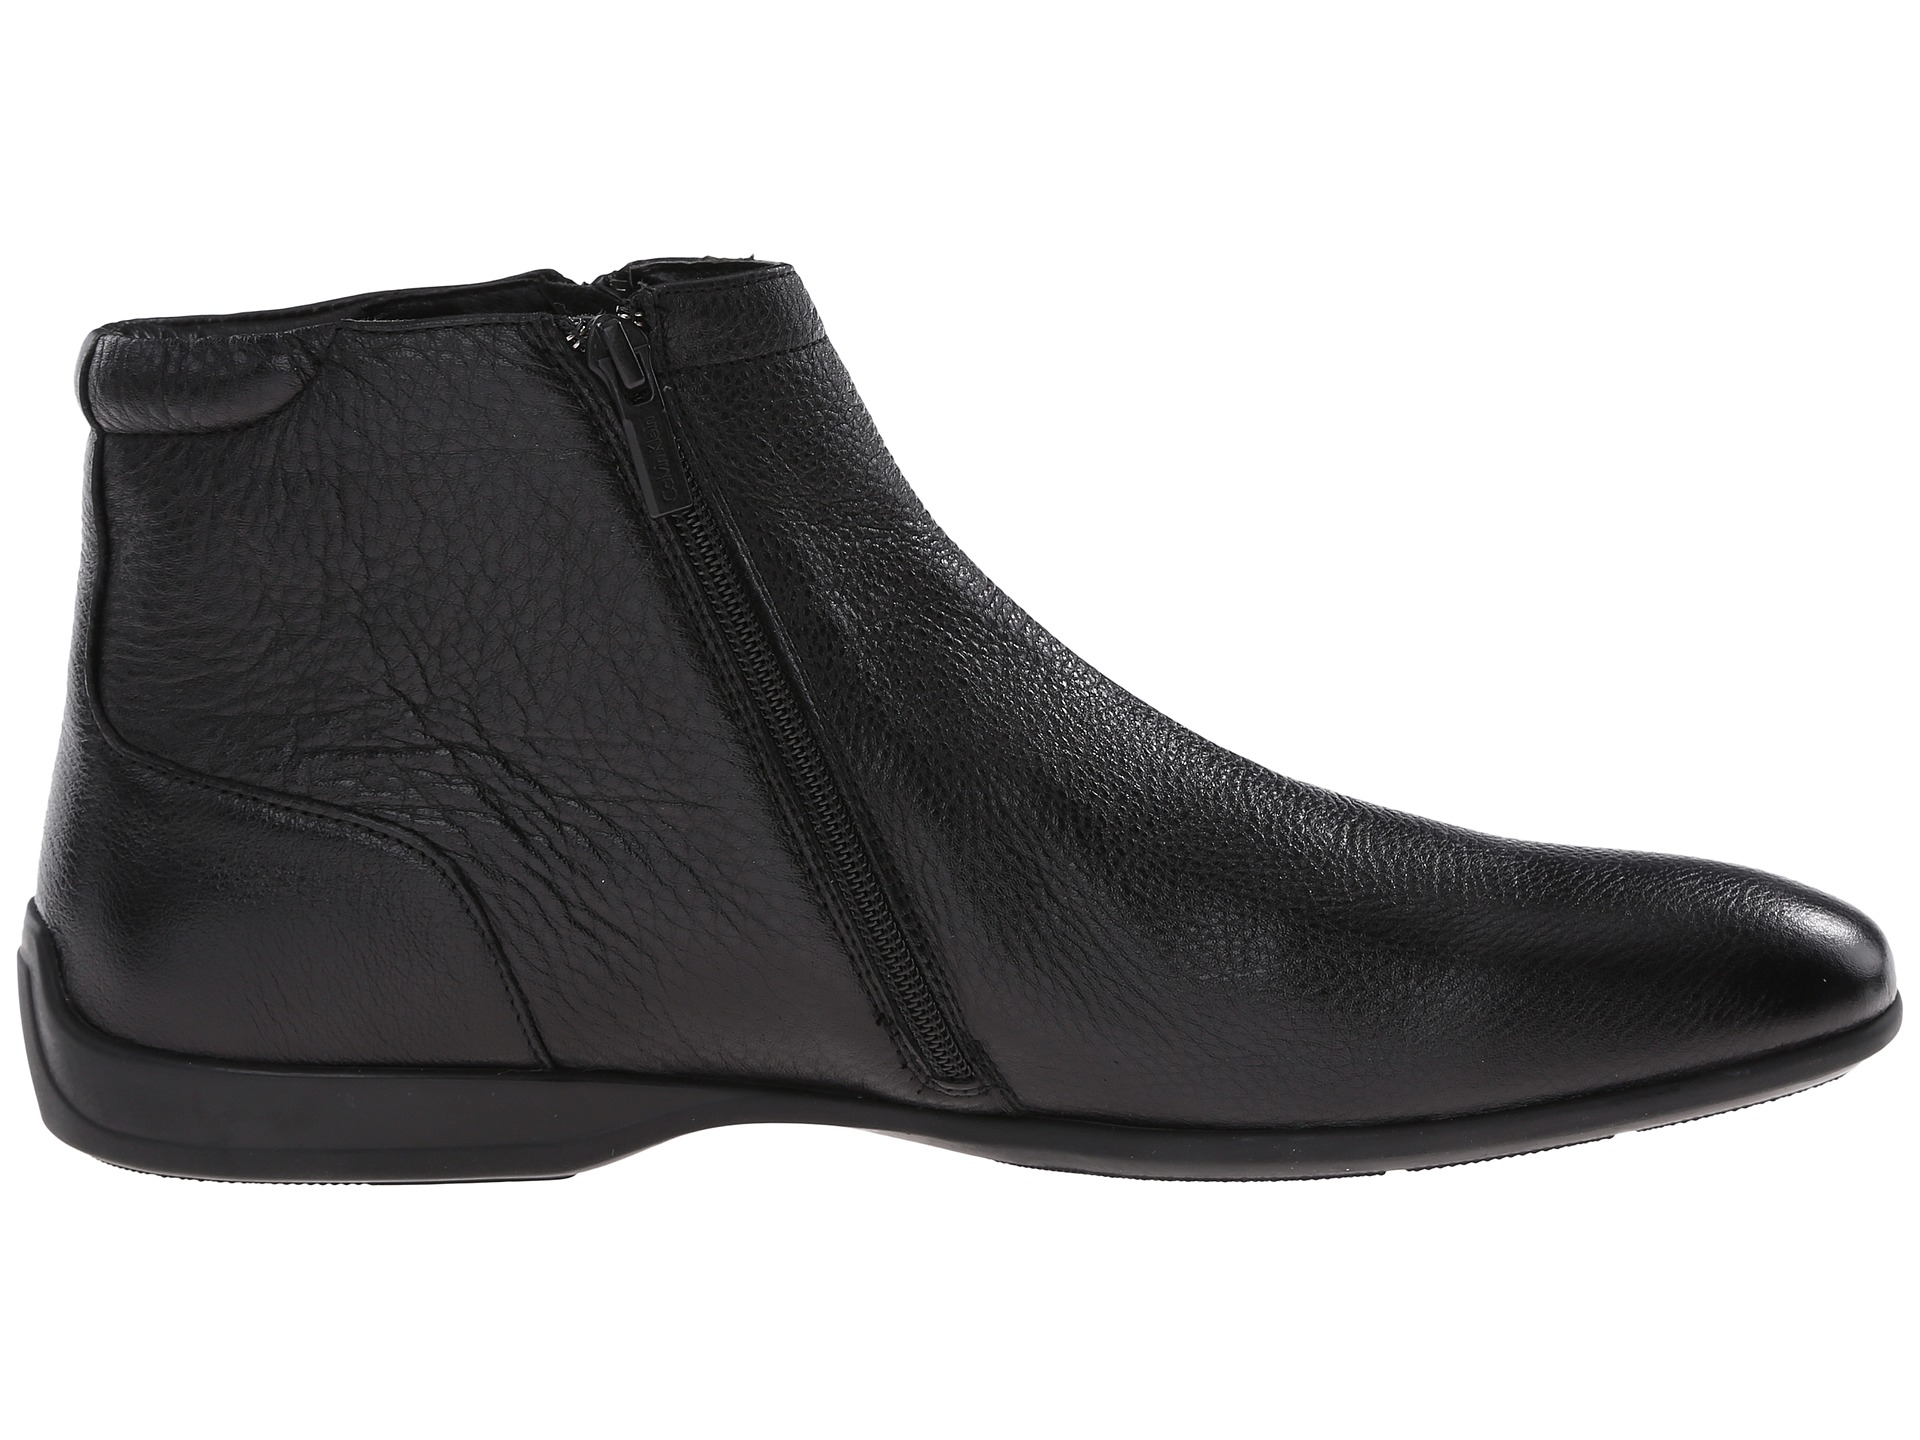 Mens Boots Calvin Klein Viceroy Black Leather